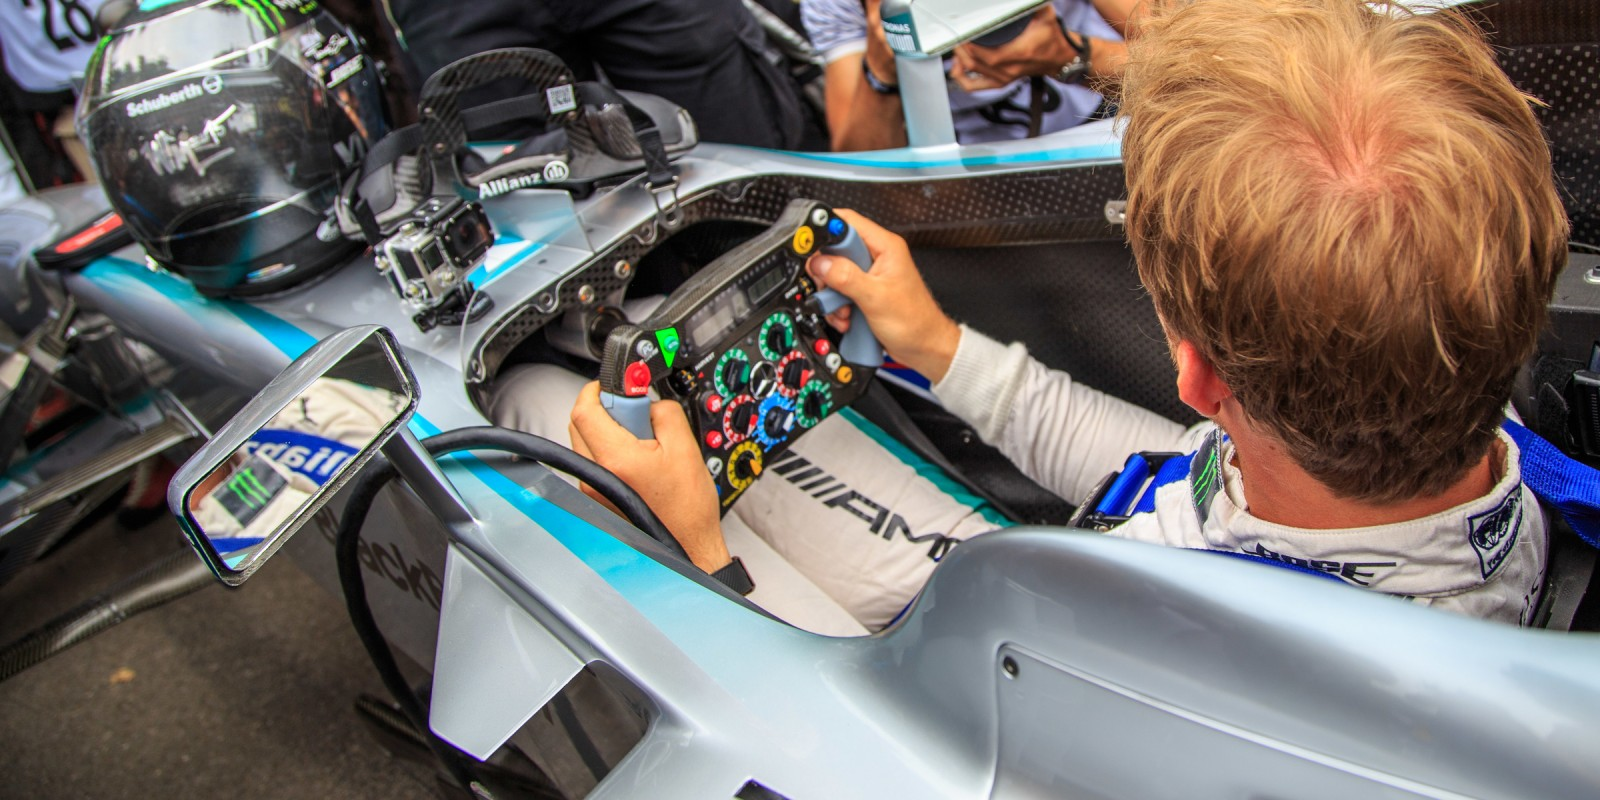 Nico Rosberg at Goodwood FOS